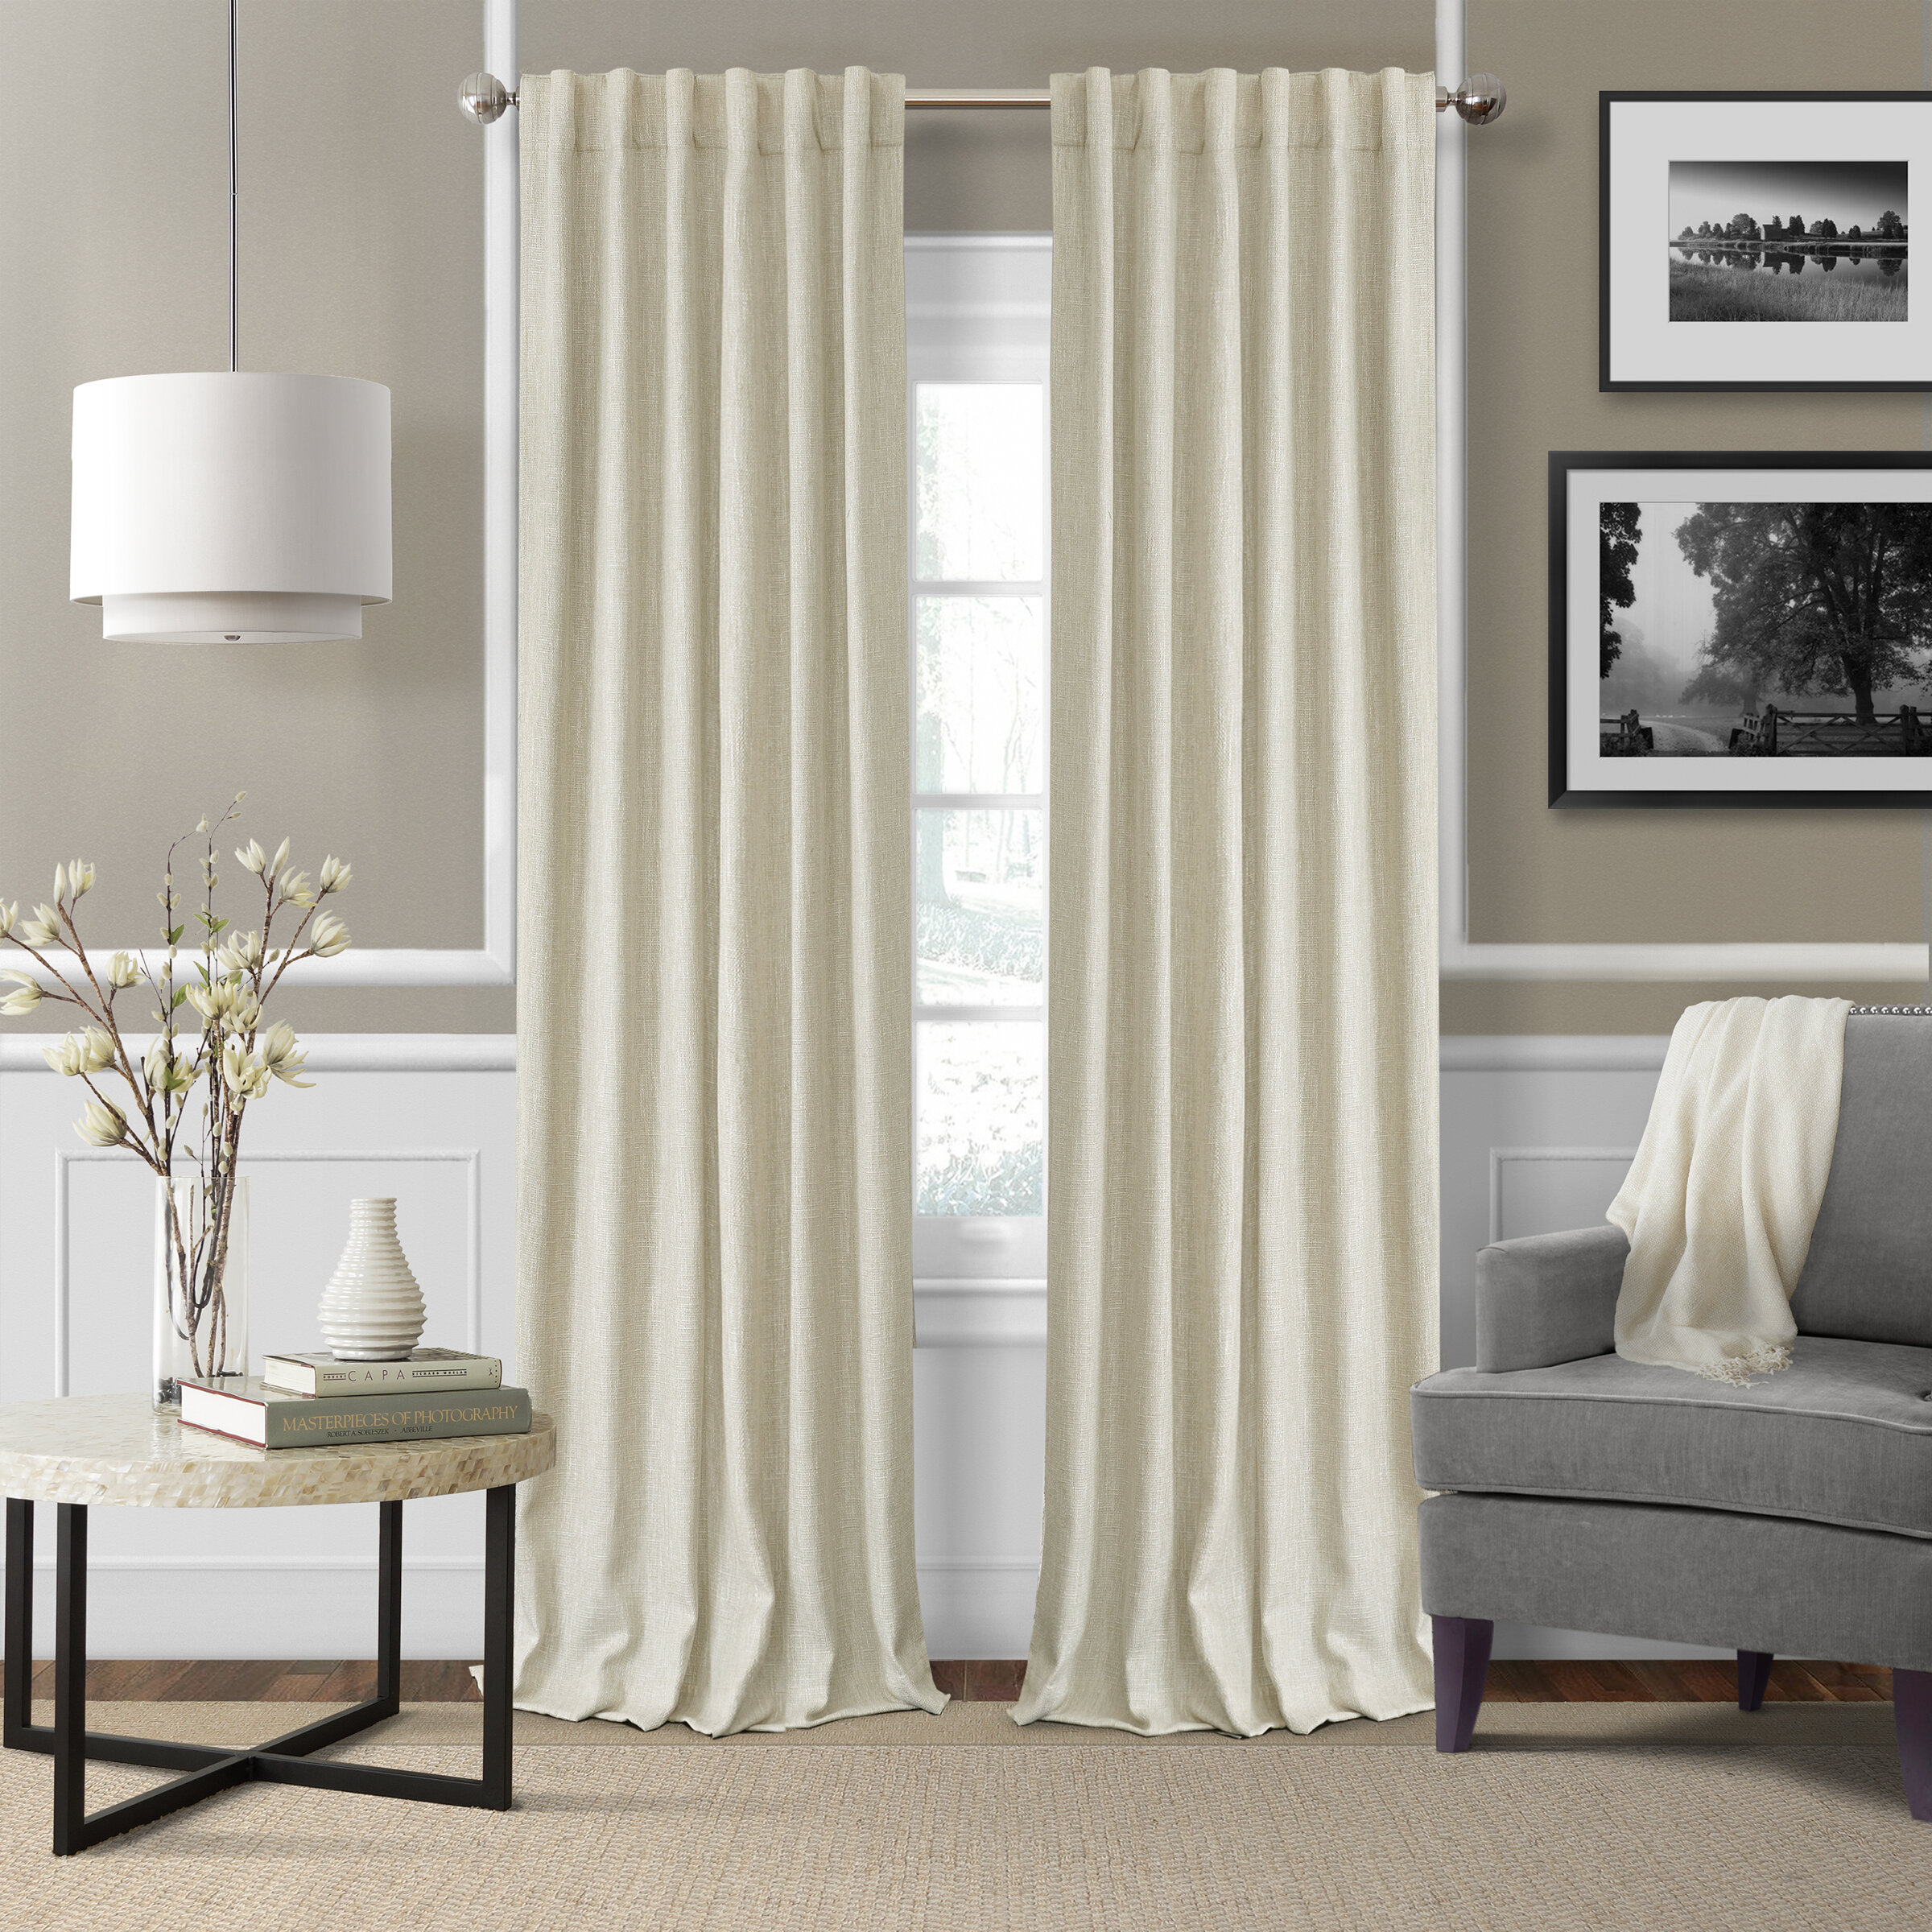 panel linen shipping product curtains home curtain blackout garden window skyline overstock free today